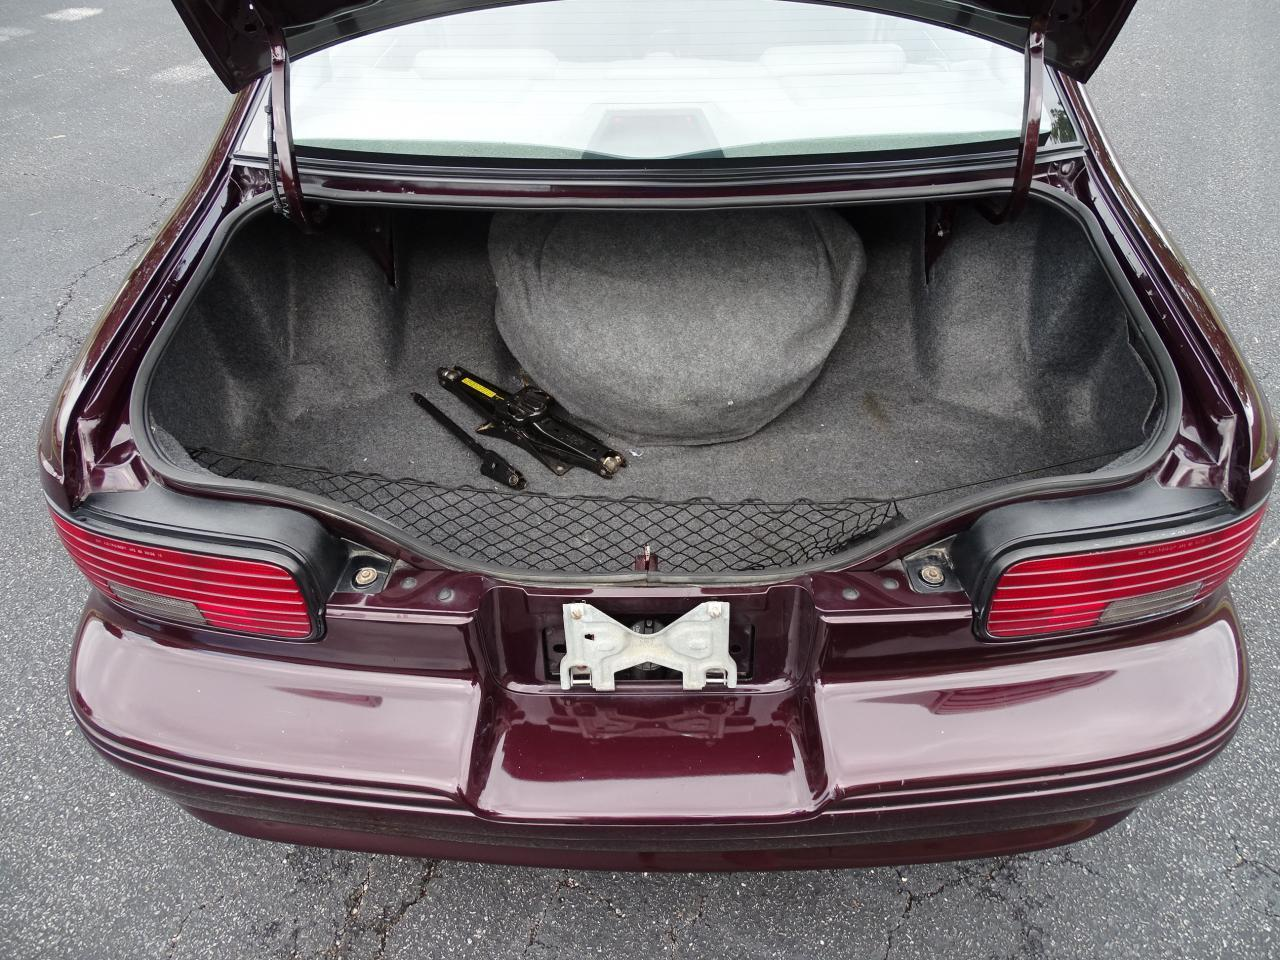 Large Picture of 1996 Impala located in Illinois Offered by Gateway Classic Cars - St. Louis - QB5K